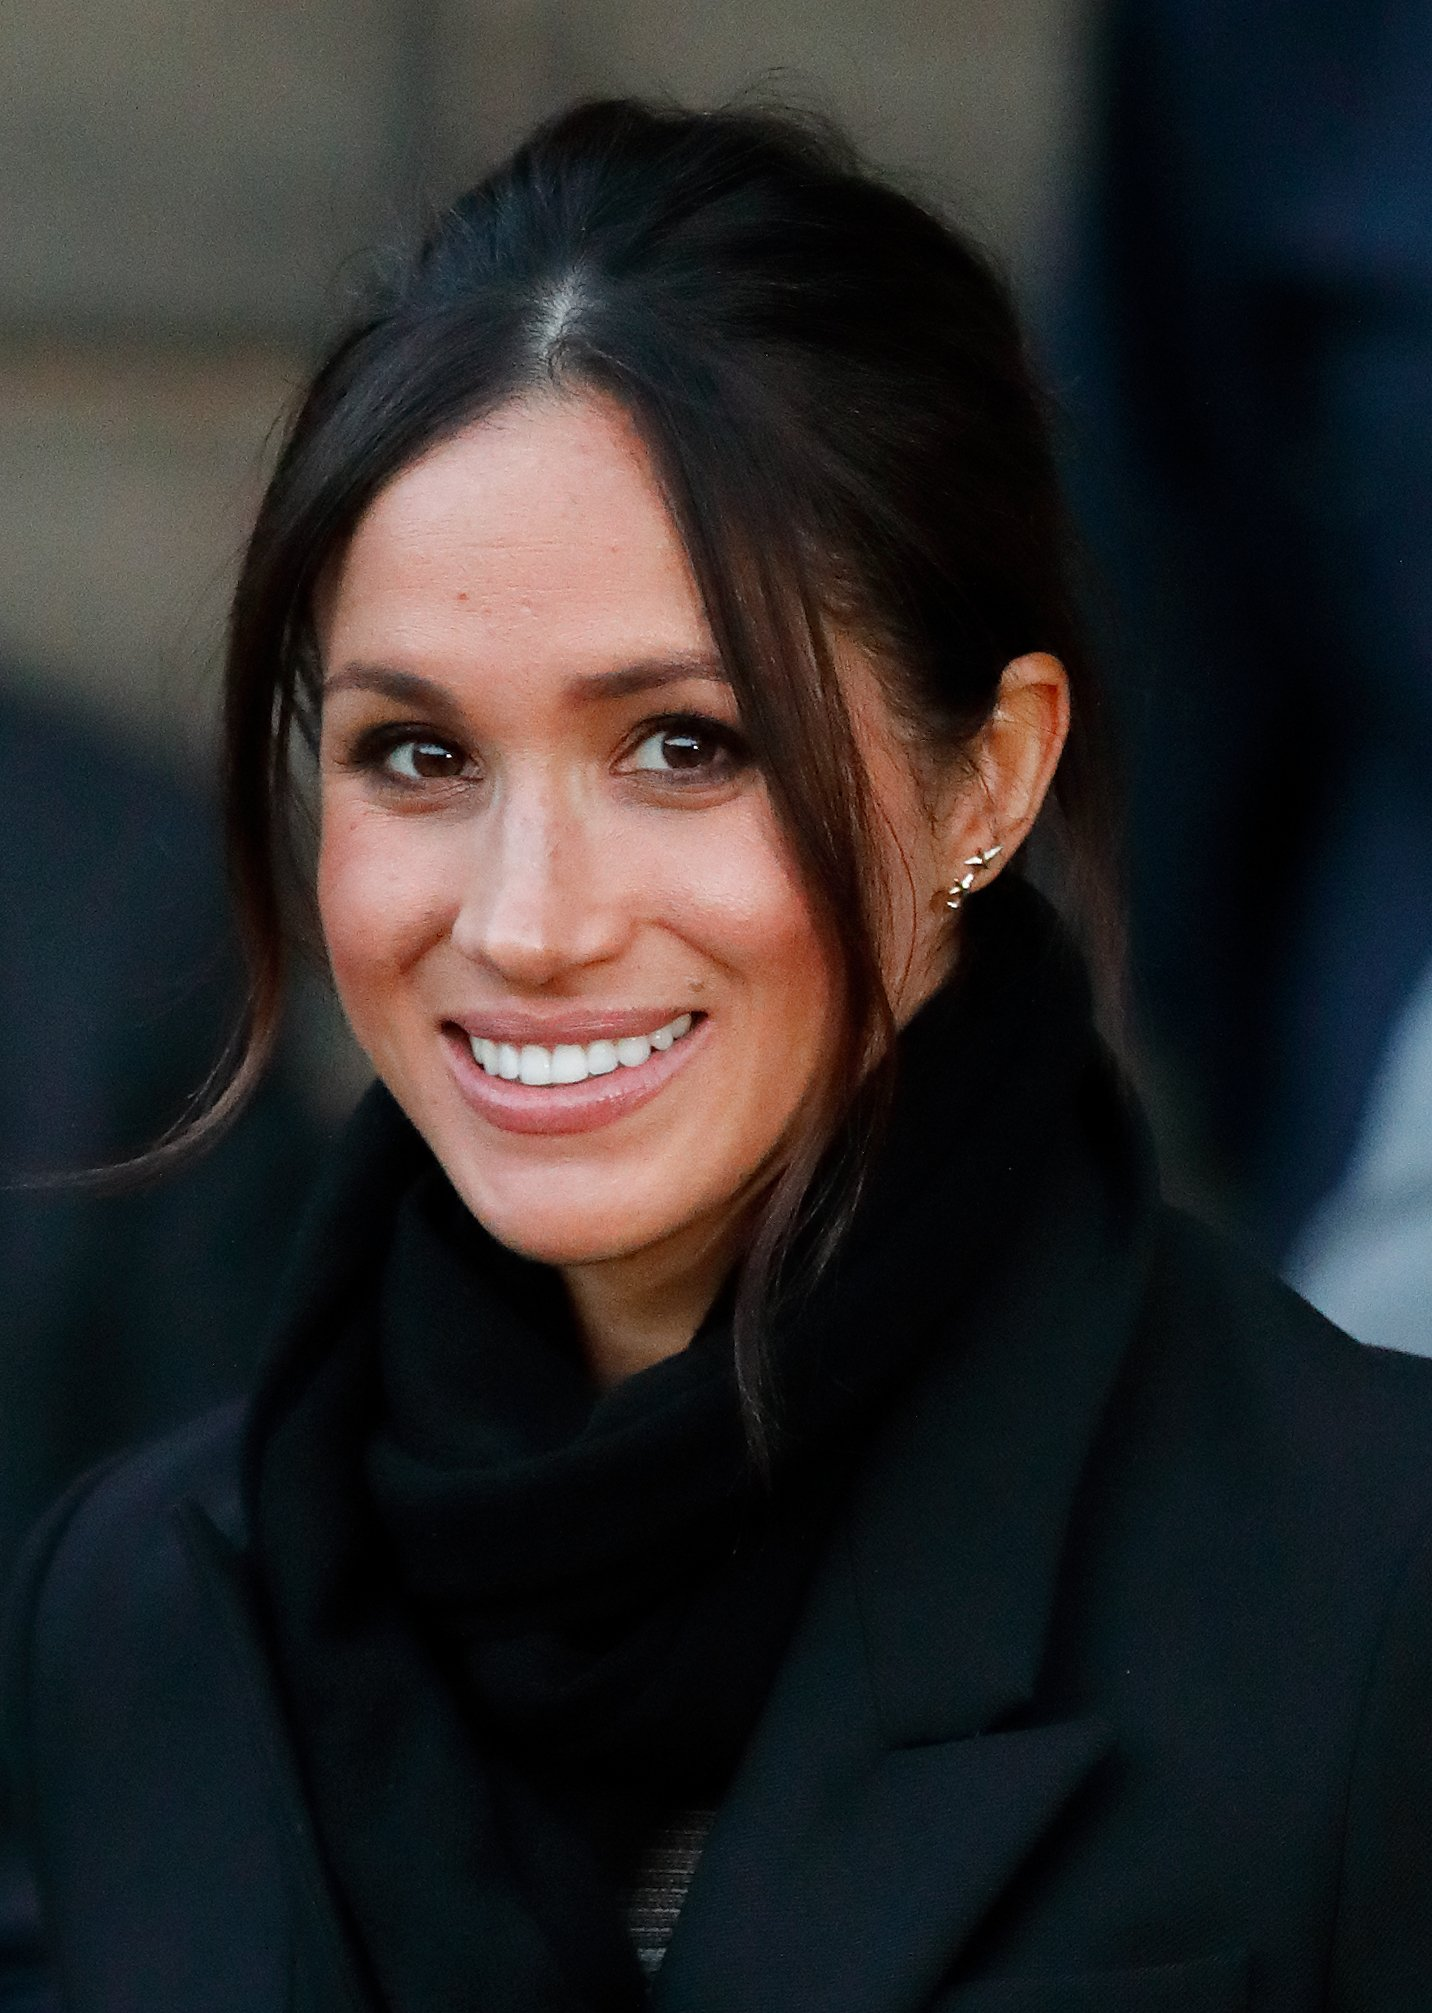 Meghan Markle visiting Cardiff Castle in January 2018. | Photo: Getty Images